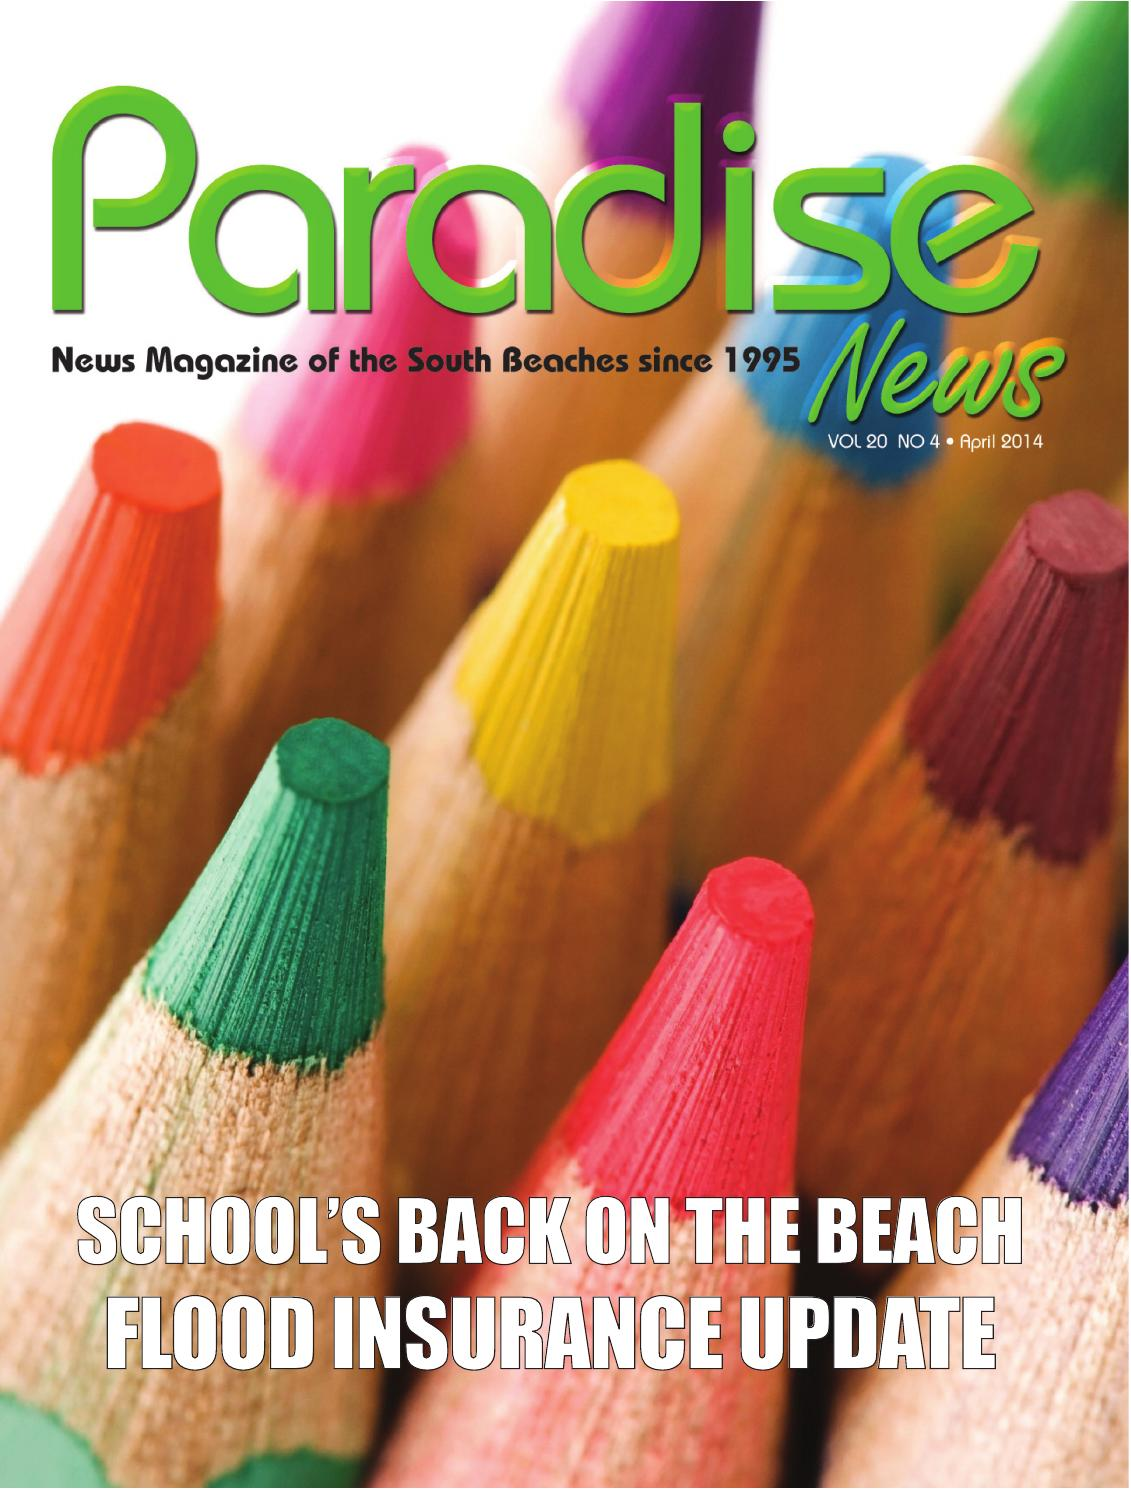 bamboo fence installation team galatea homes decorative.htm paradise news april 2014 issue by paradisenewsfl issuu  paradise news april 2014 issue by